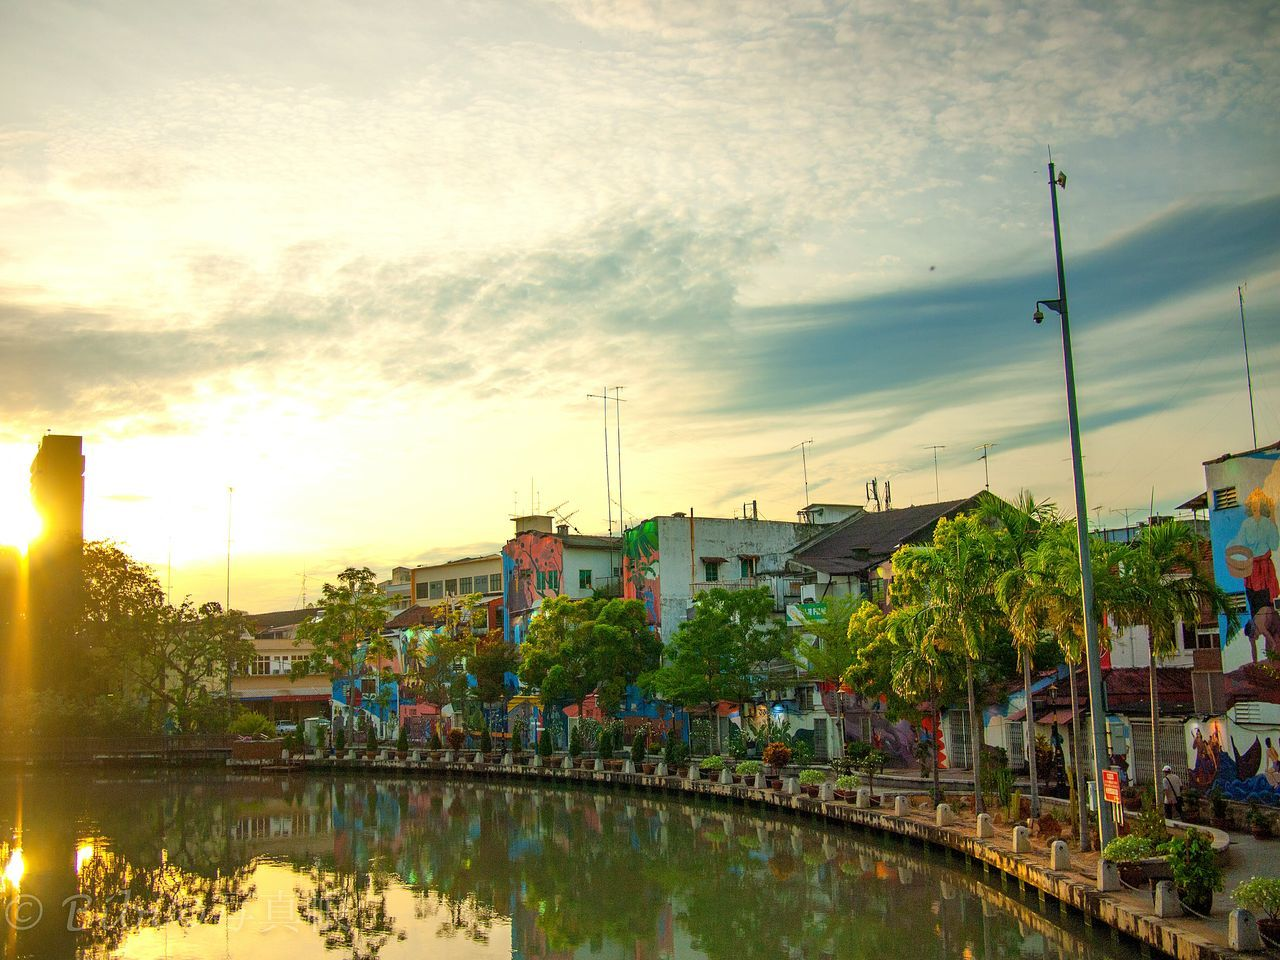 Sky Tree Cityscape Nature Water Outdoors Urban Skyline Cloud - Sky City No People Day Sunrise Sunrise And Clouds Colorful Houses Hope Dramatic Sky Dramatic Landscape Lightning Reflections In The Water Landscape Photography Street Photography Colour Awesome_view